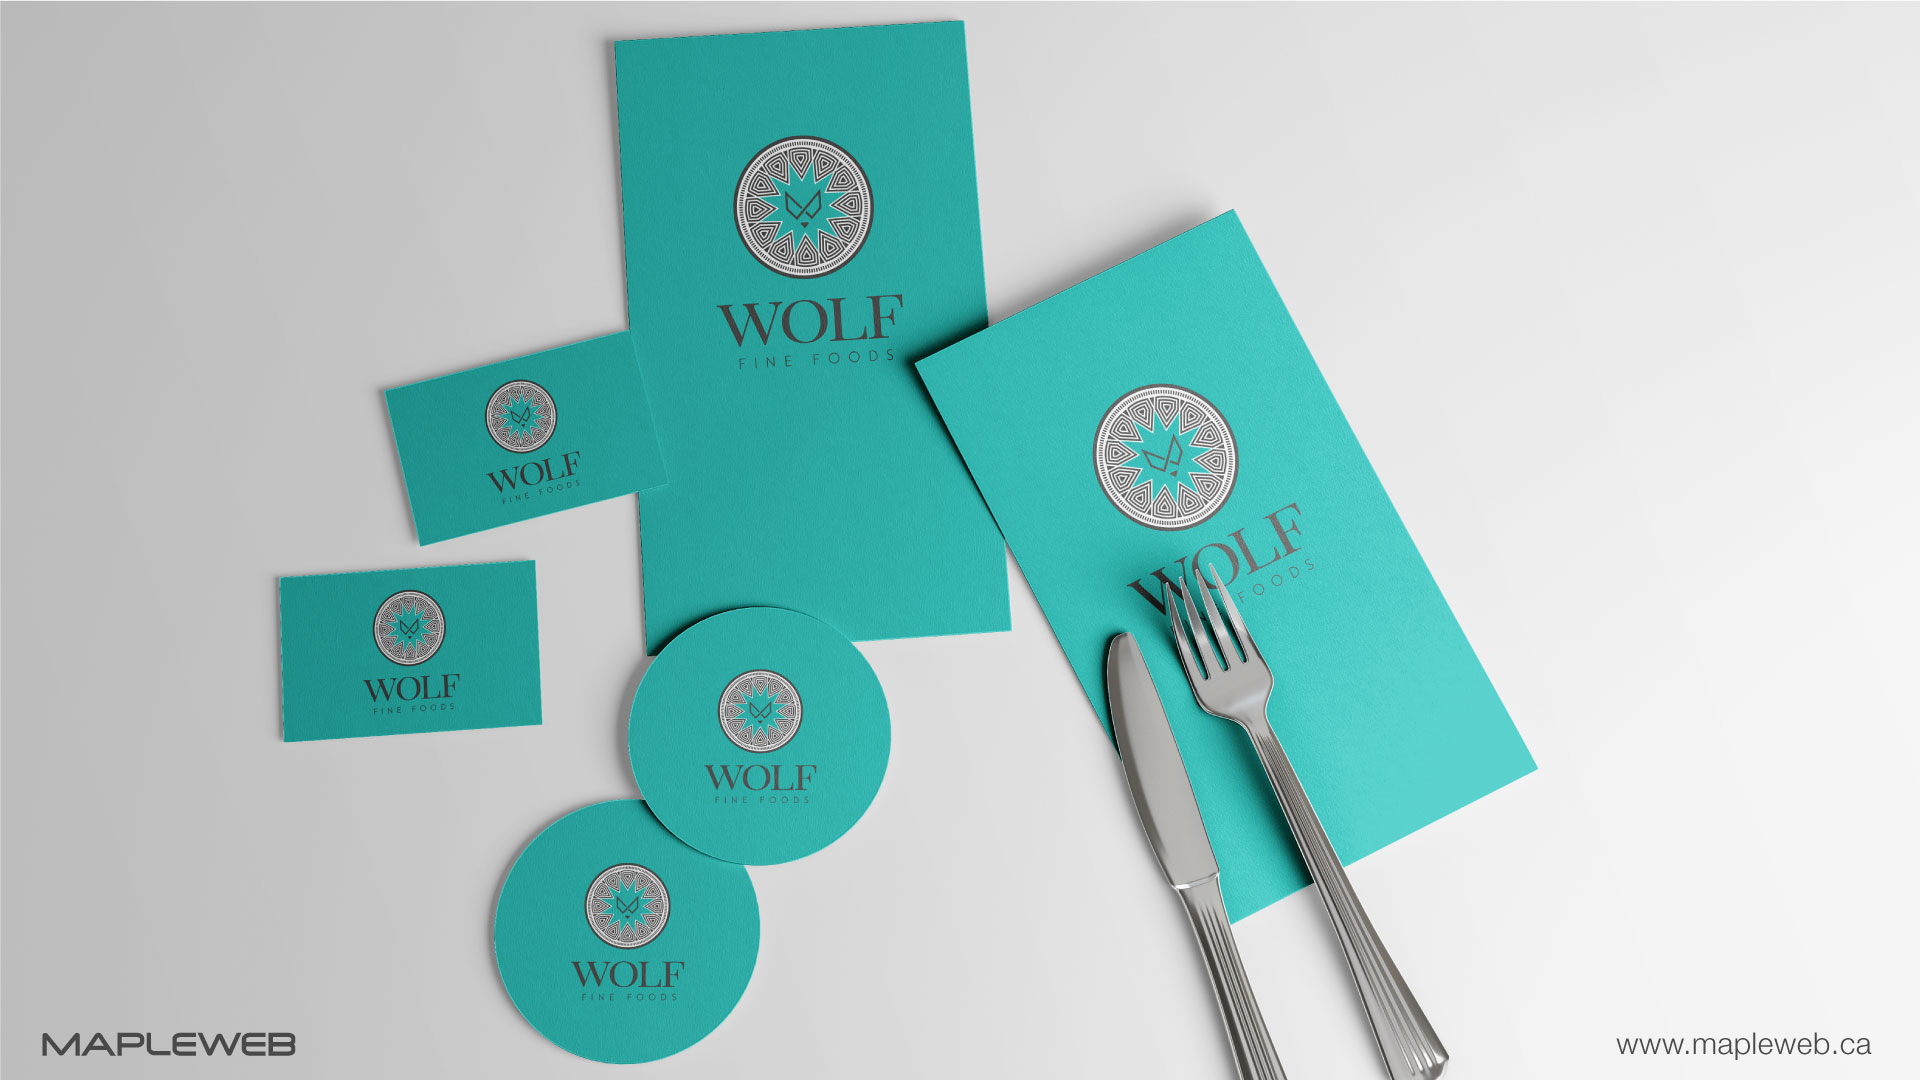 wolf-fine-foods-brand-logo-design-by-mapleweb-vancouver-canada-paper-stickers-folk-spoon-mock